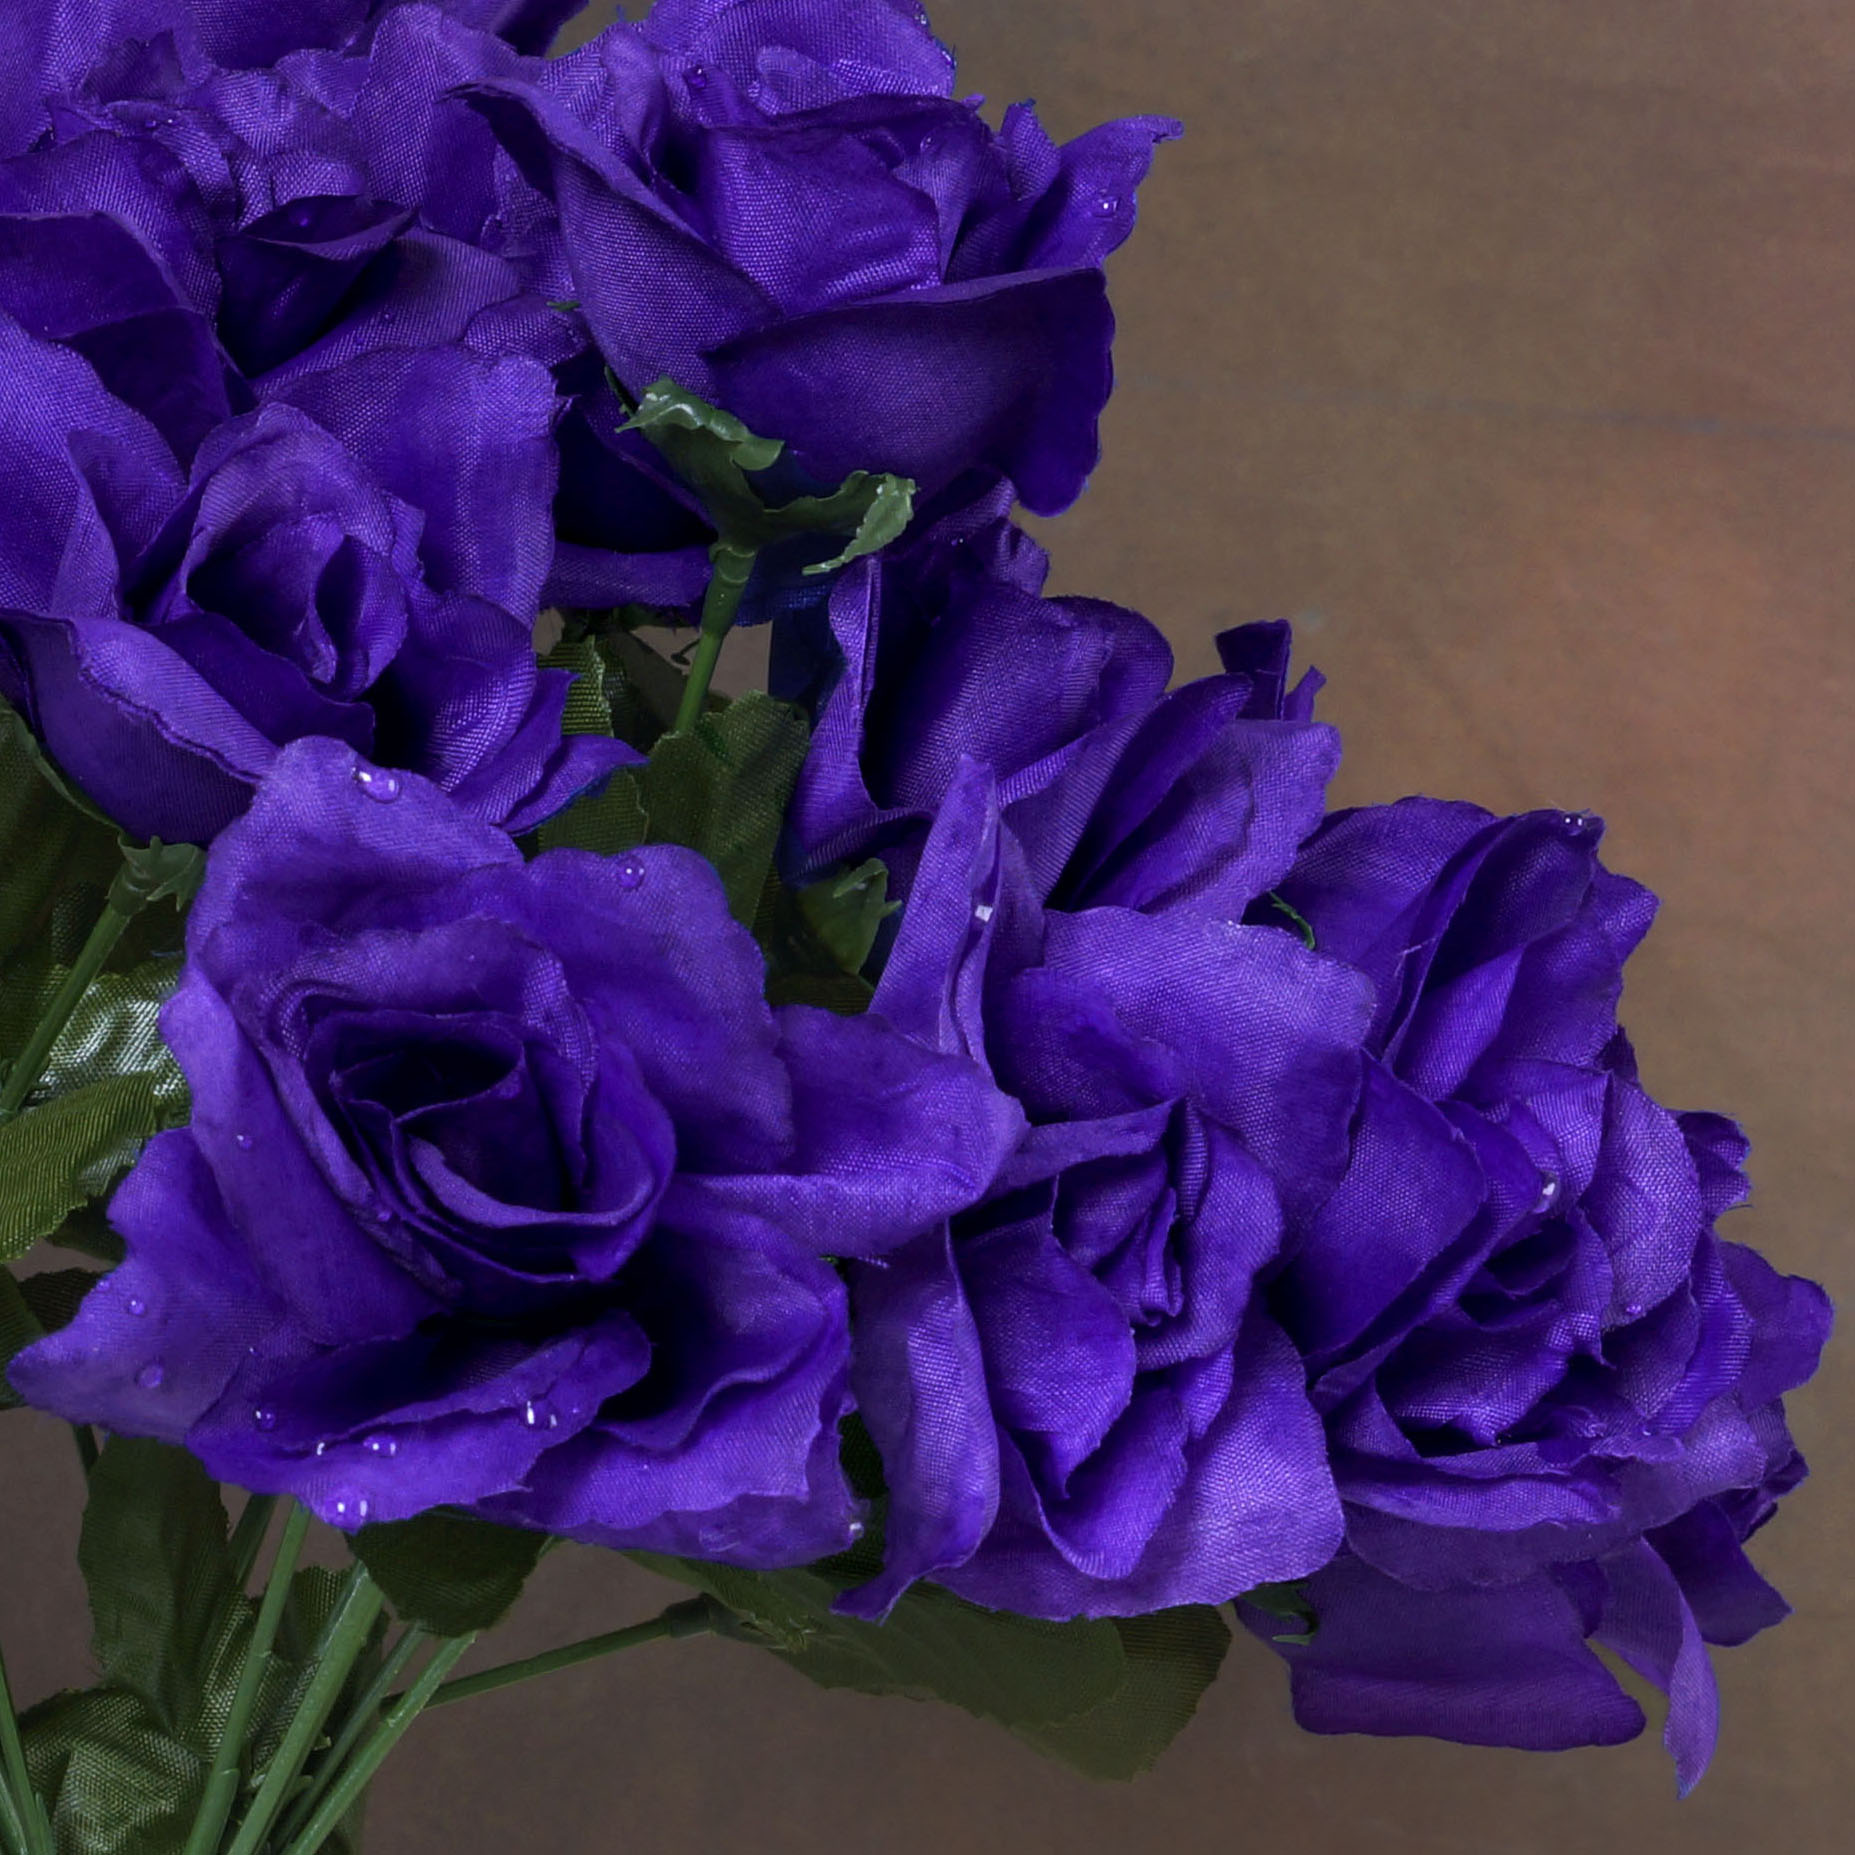 252 SILK OPEN ROSES Wedding WHOLESALE Discounted Flowers Bouquets ...